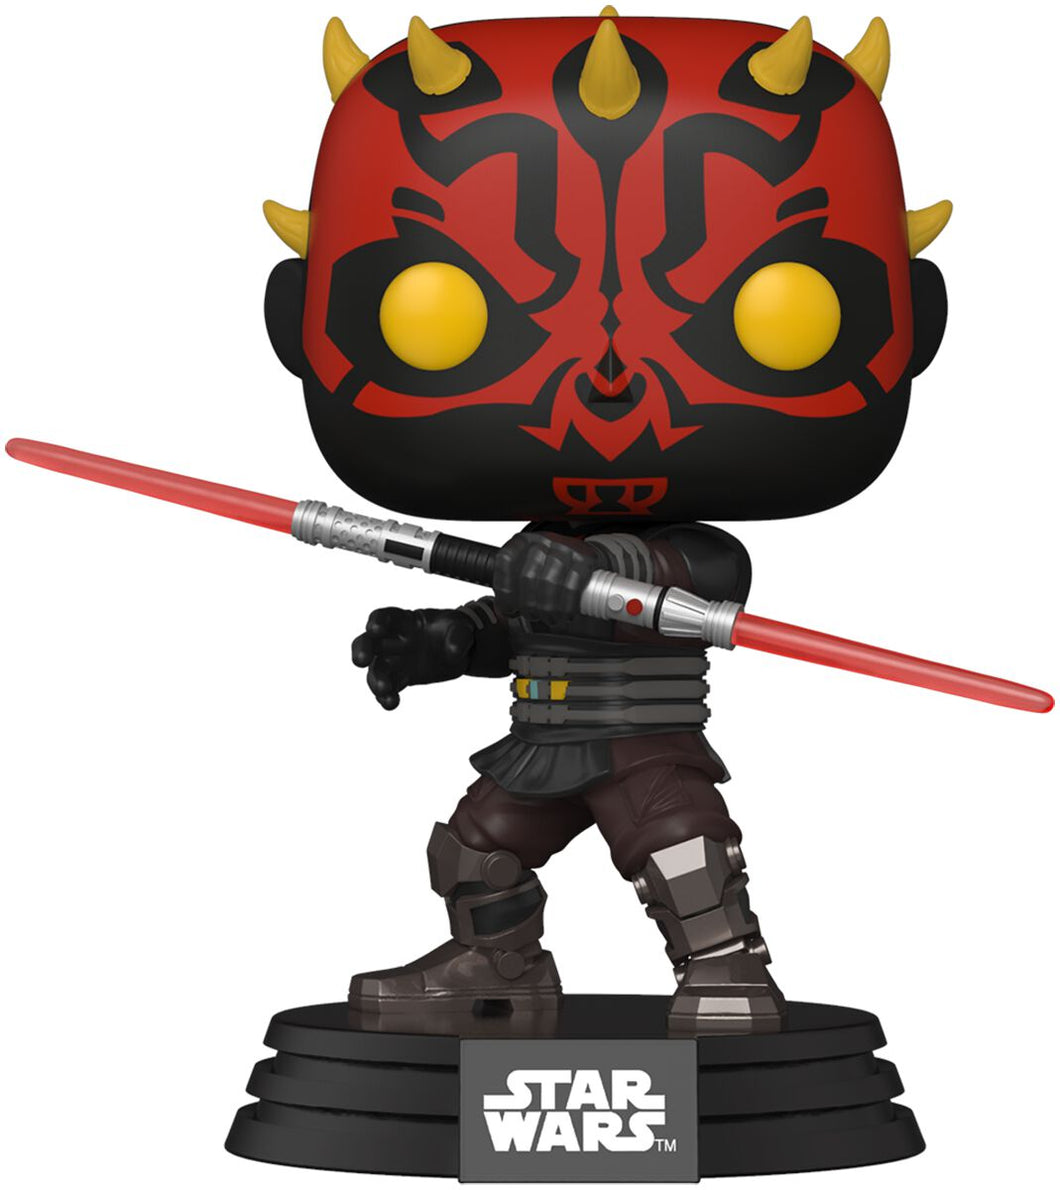 Star Wars: The Clone Wars - Darth Maul Pop!